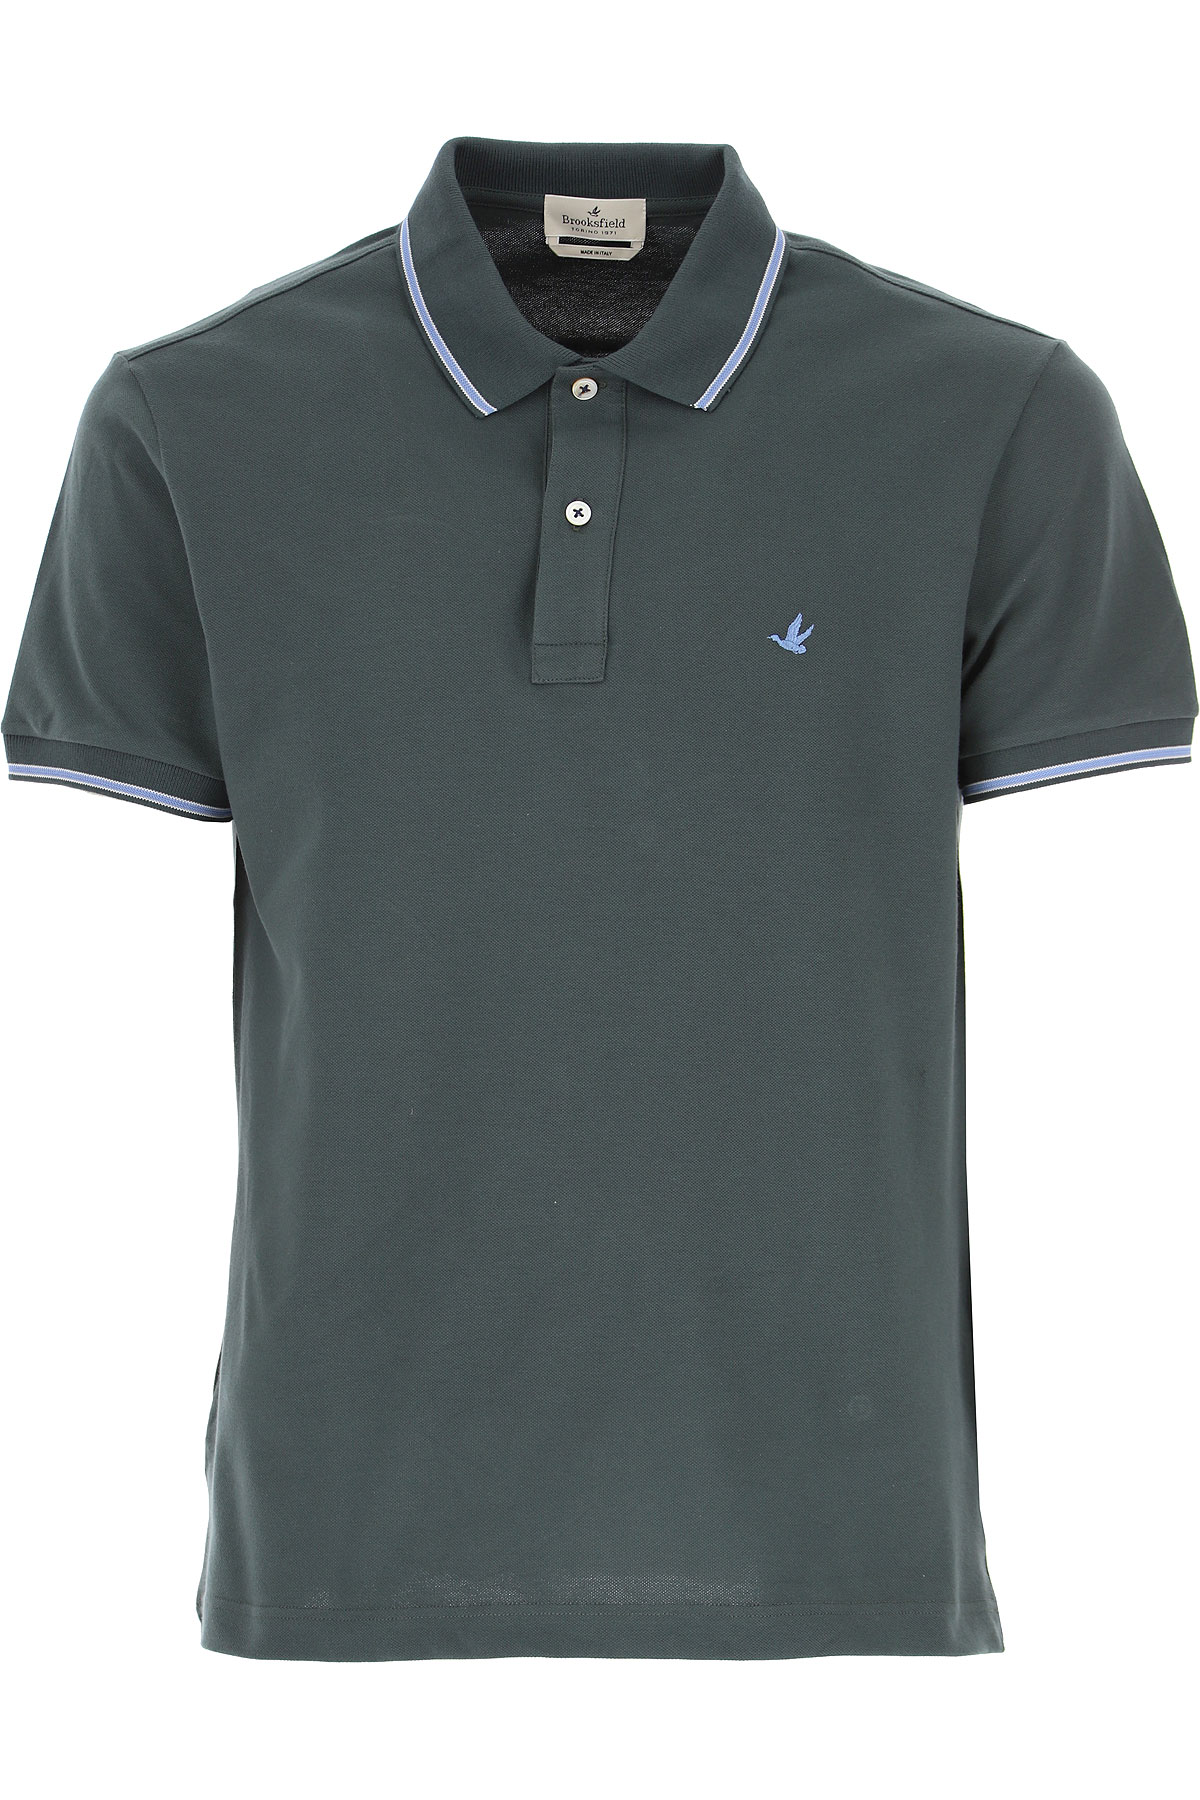 Brooksfield Polo Shirt for Men On Sale, Dark Olive Green, Cotton, 2019, L M XXL XXXL